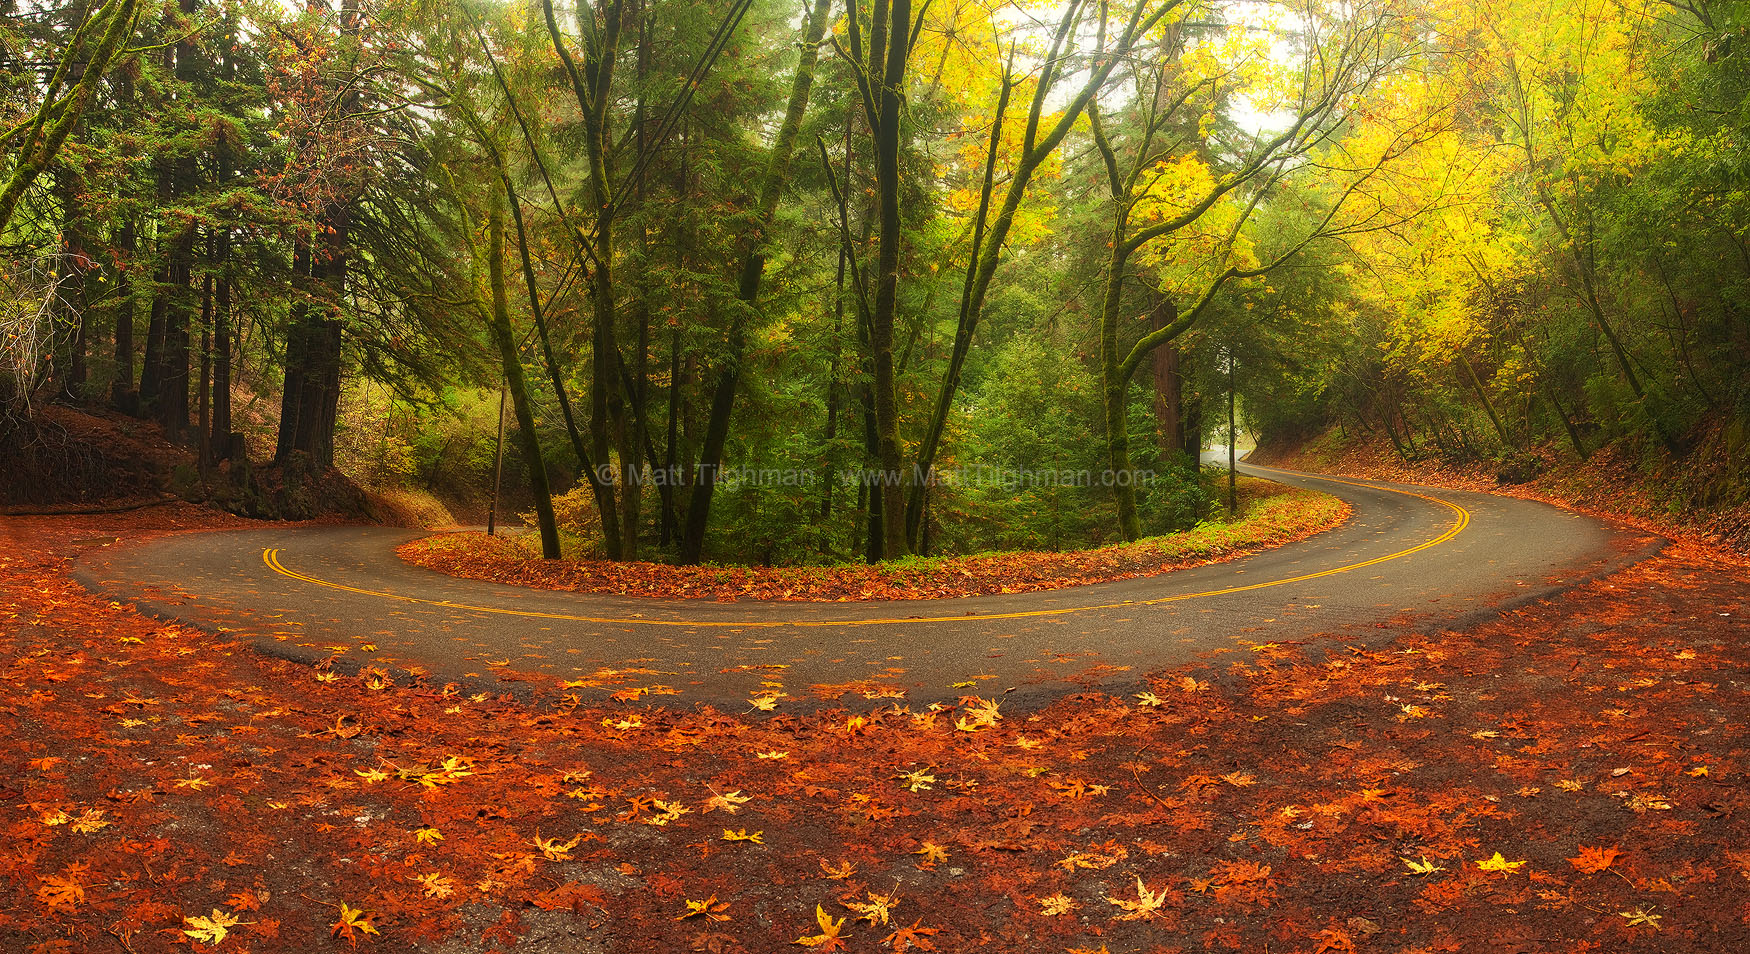 Fine art stock landscape photograph near Palo Alto, California. This image is from Old La Honda Road, a good place to find fall color in the Santa Cruz Mountains.